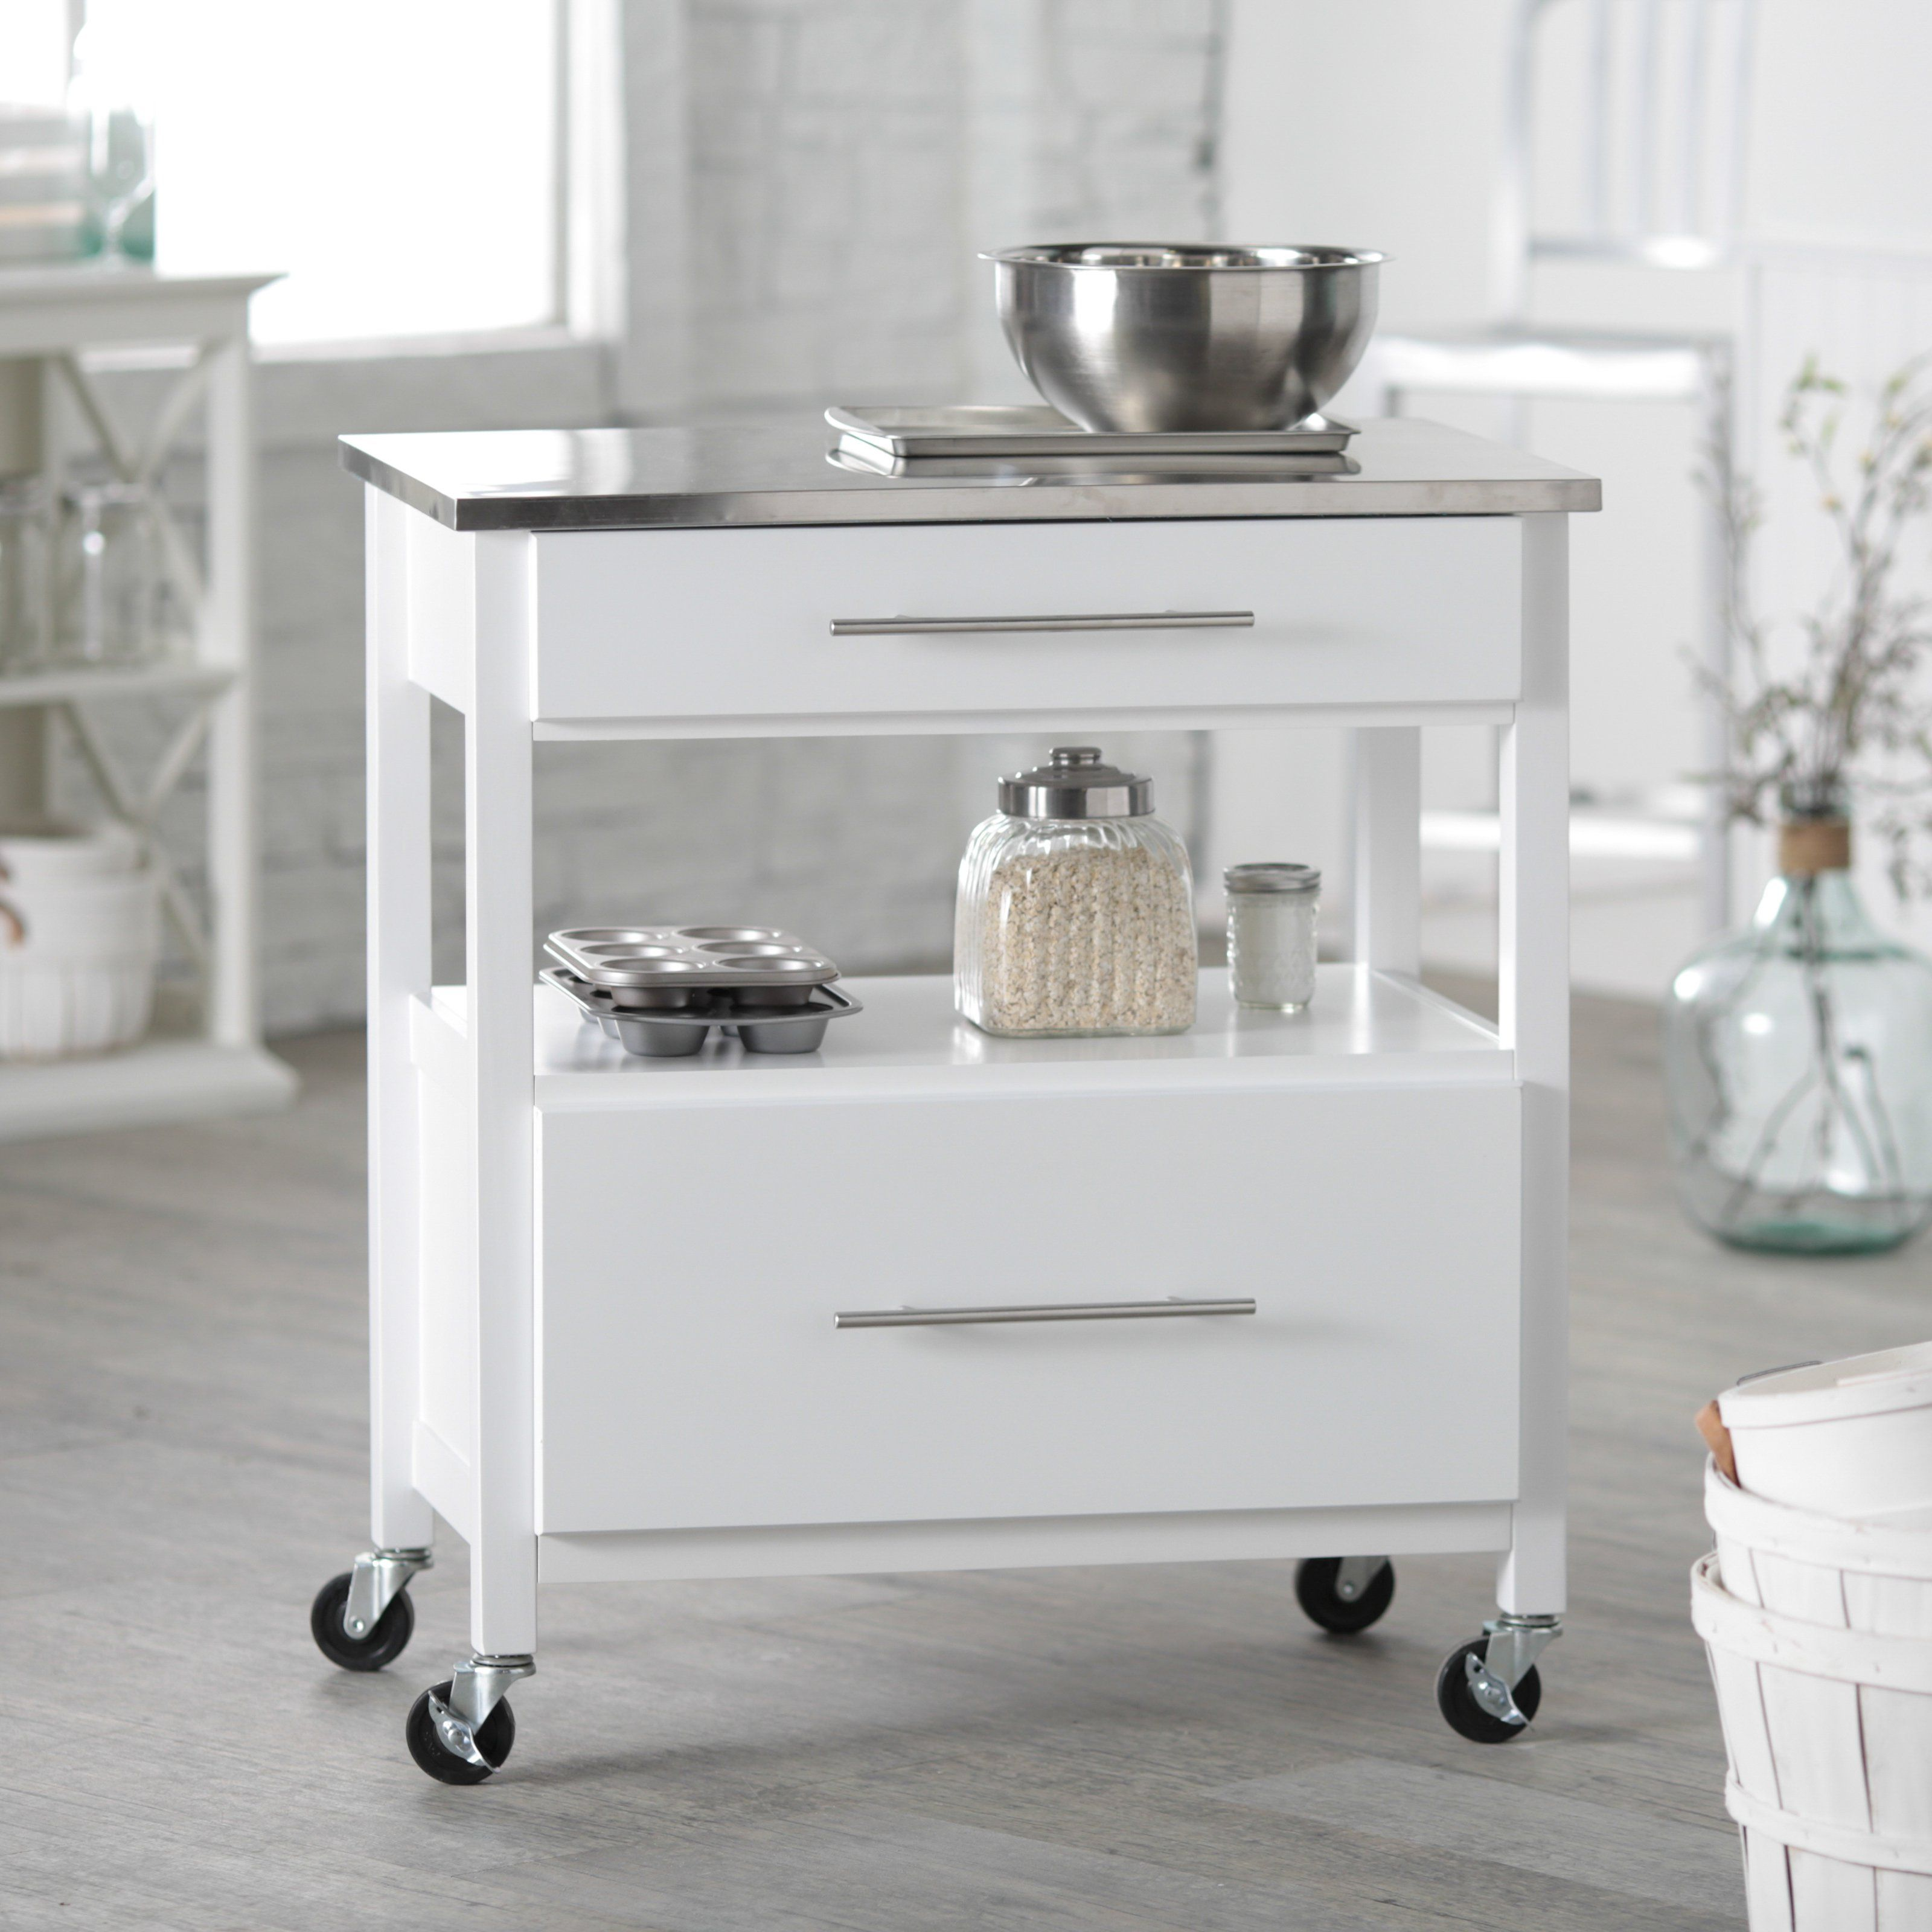 Have To Have It Belham Living White Mini Concord Kitchen Island With Stainless S Kitchen Island Dimensions White Kitchen Island Stainless Steel Kitchen Island